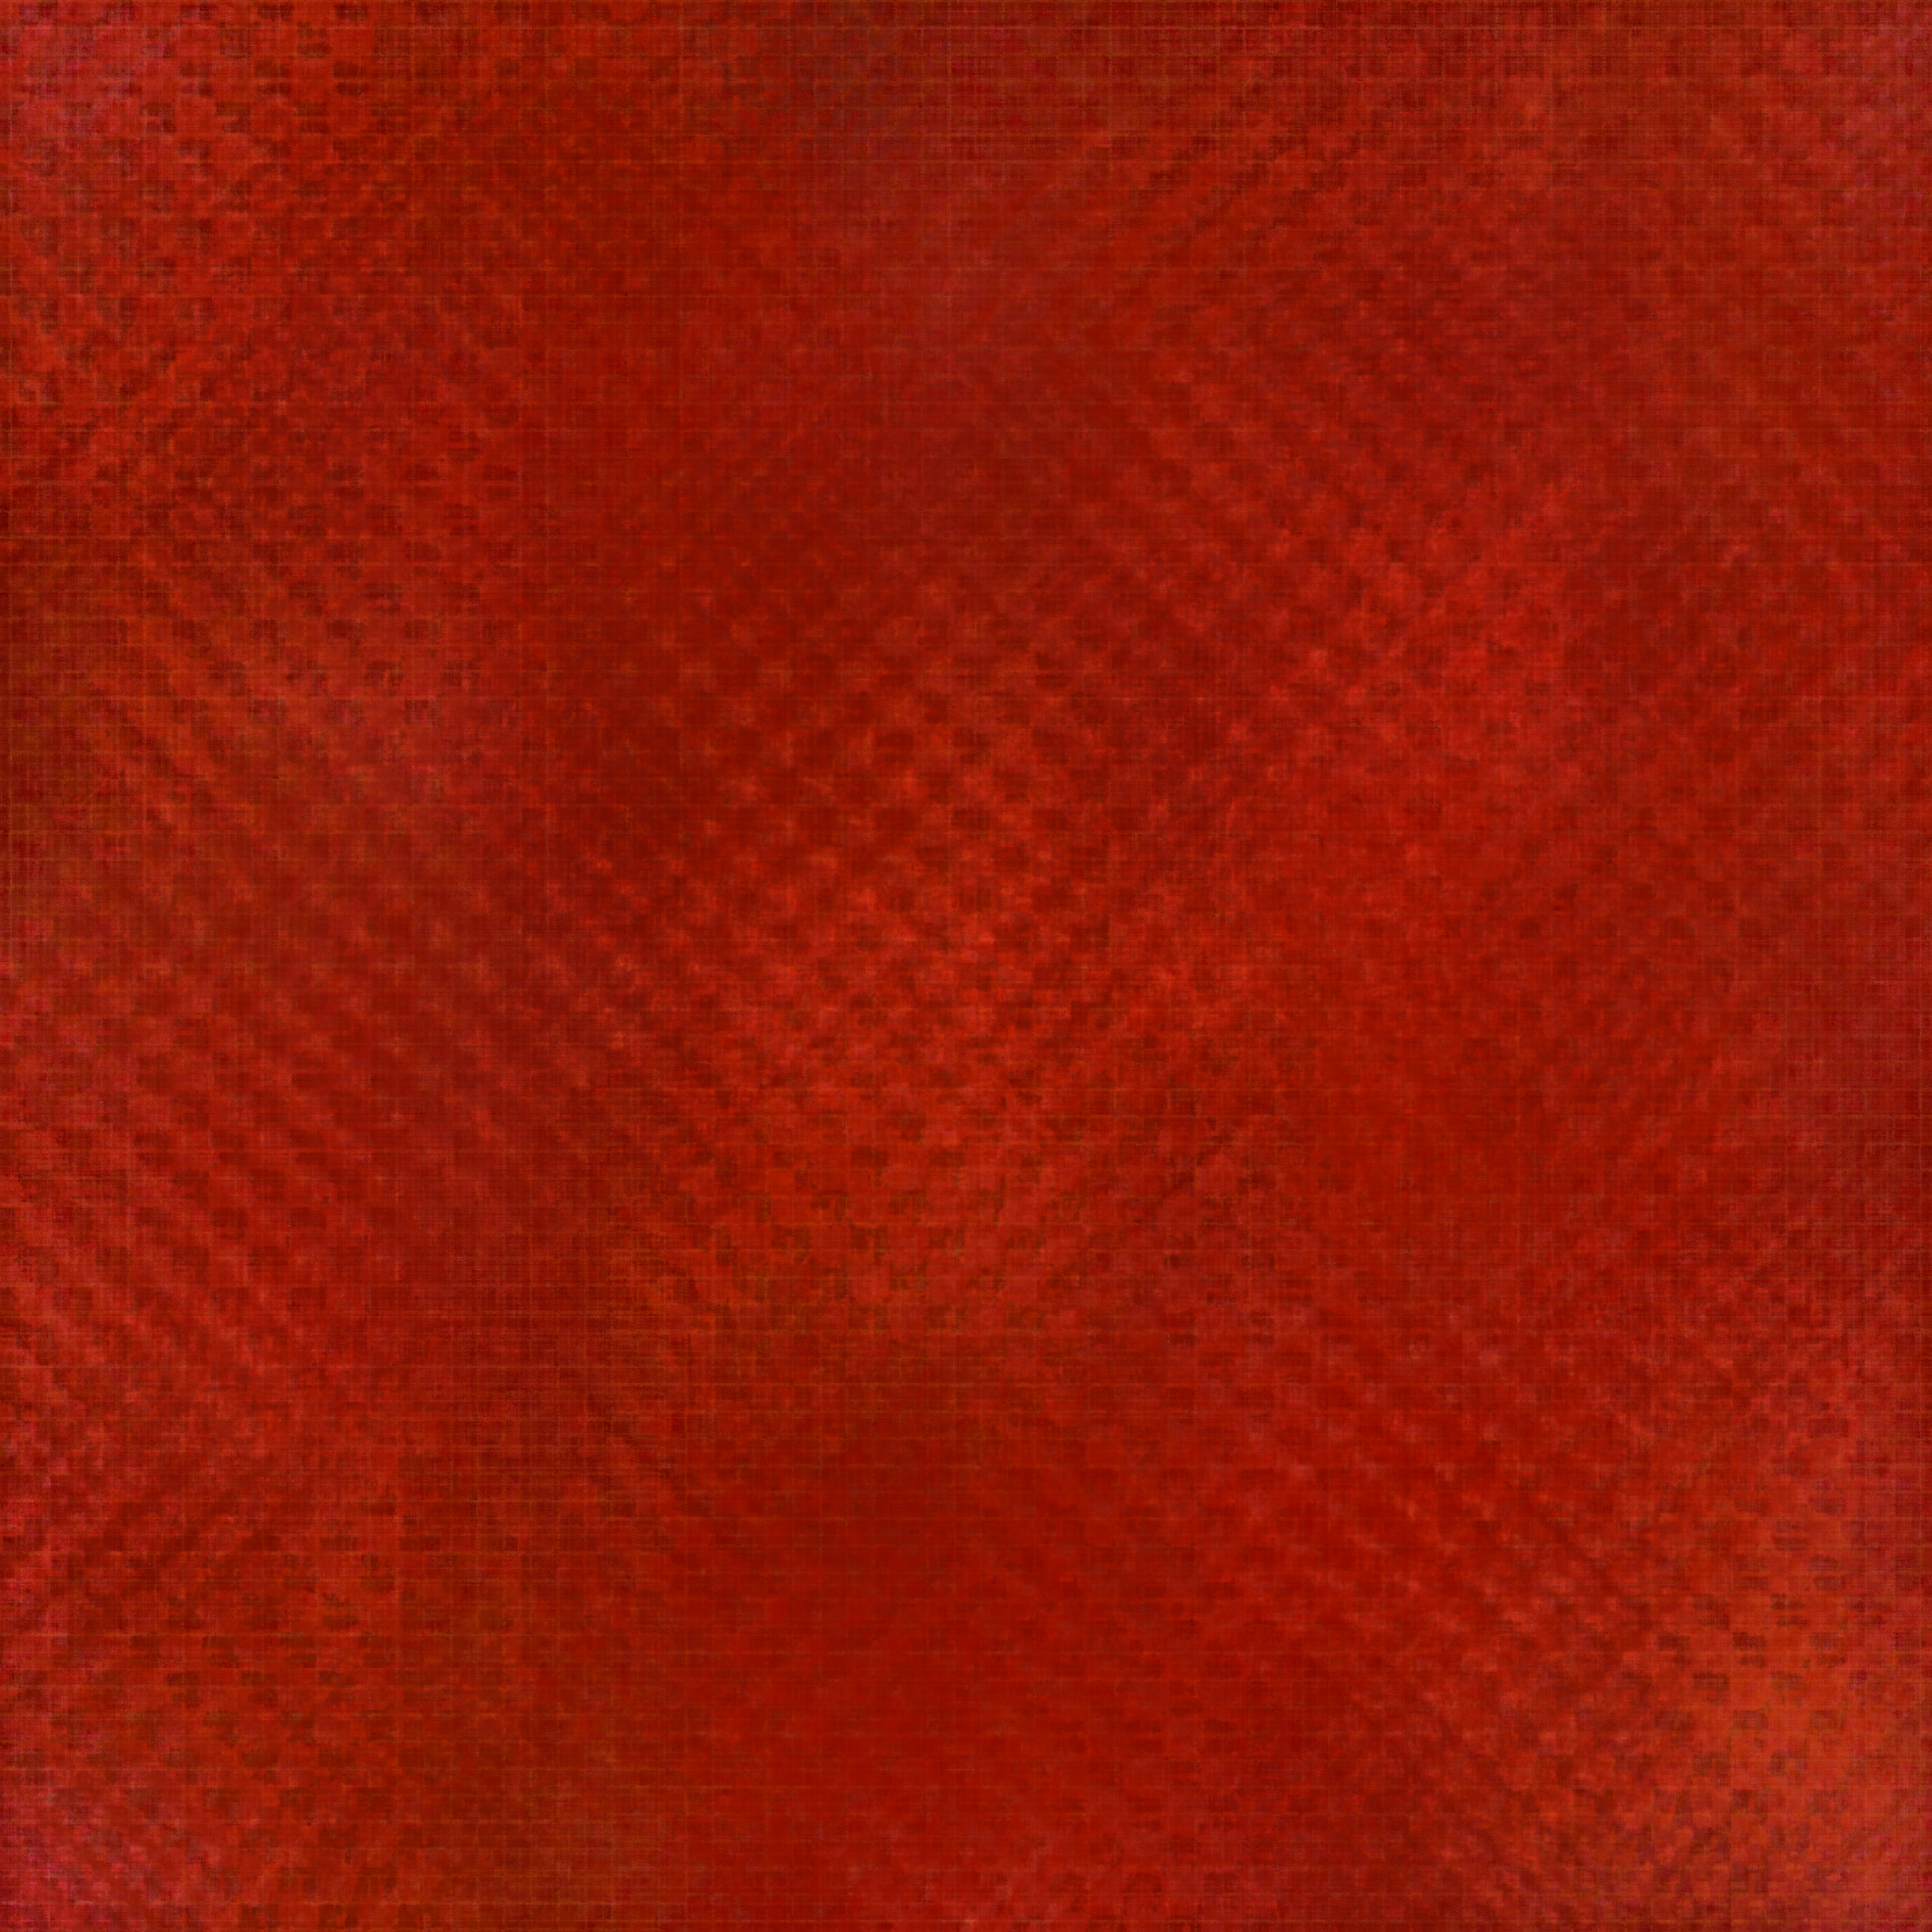 Red grunge texture background image, free download